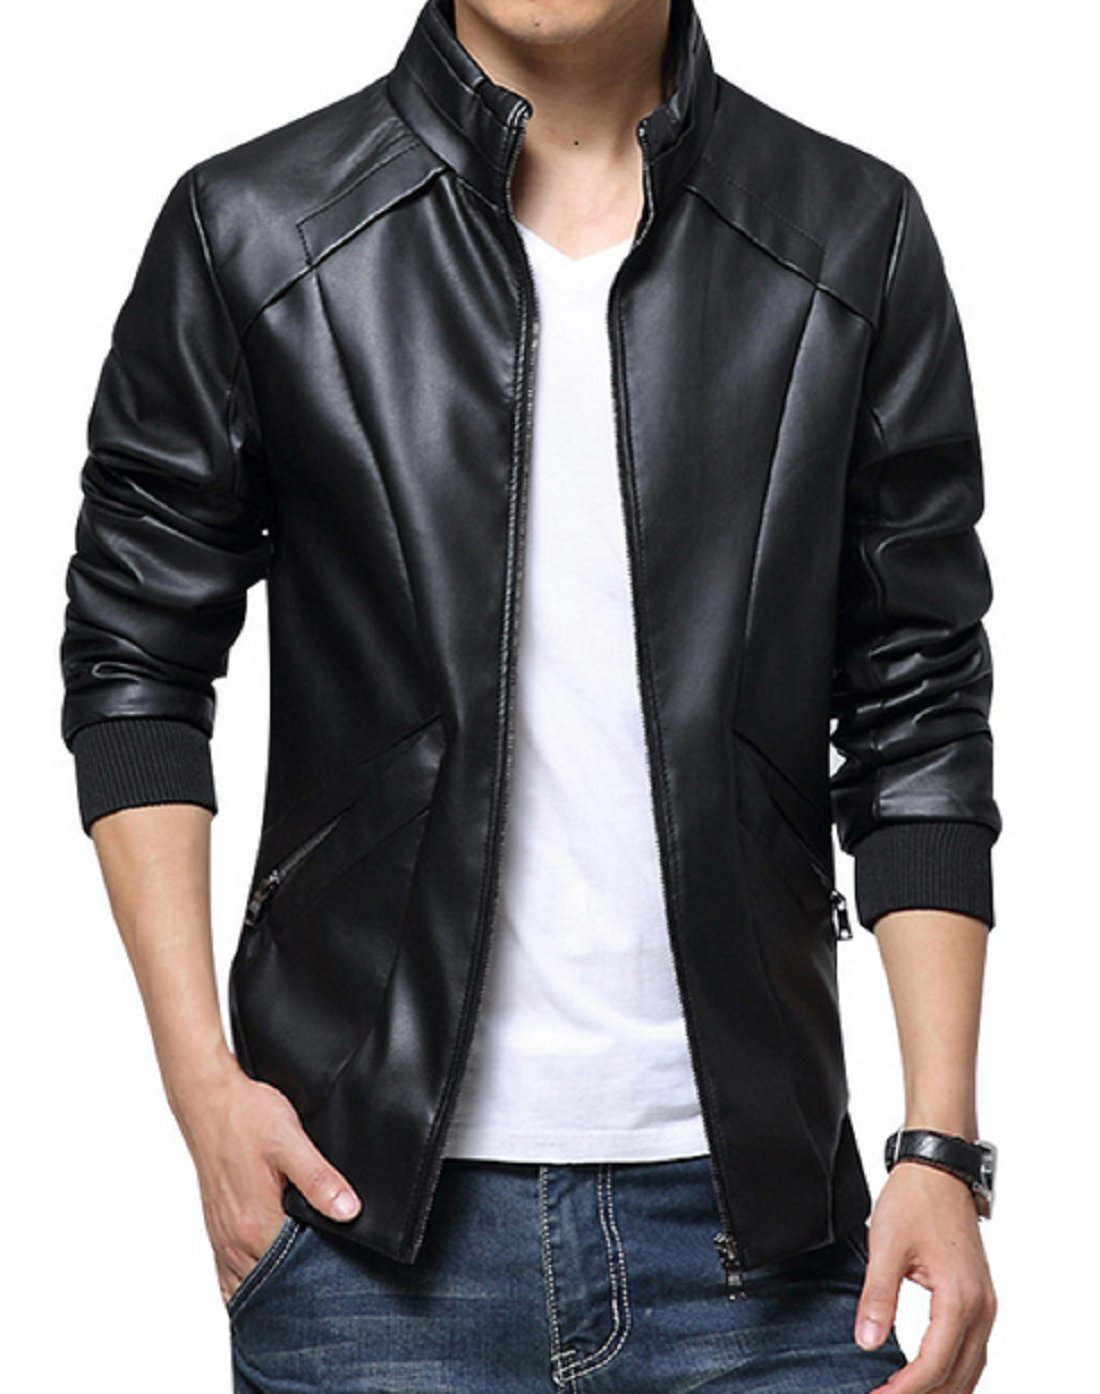 KIWEN Men's Stand Up Collar Faux Leather Jacket Slim Fit,Black,US S/Tag size: L by KIWEN